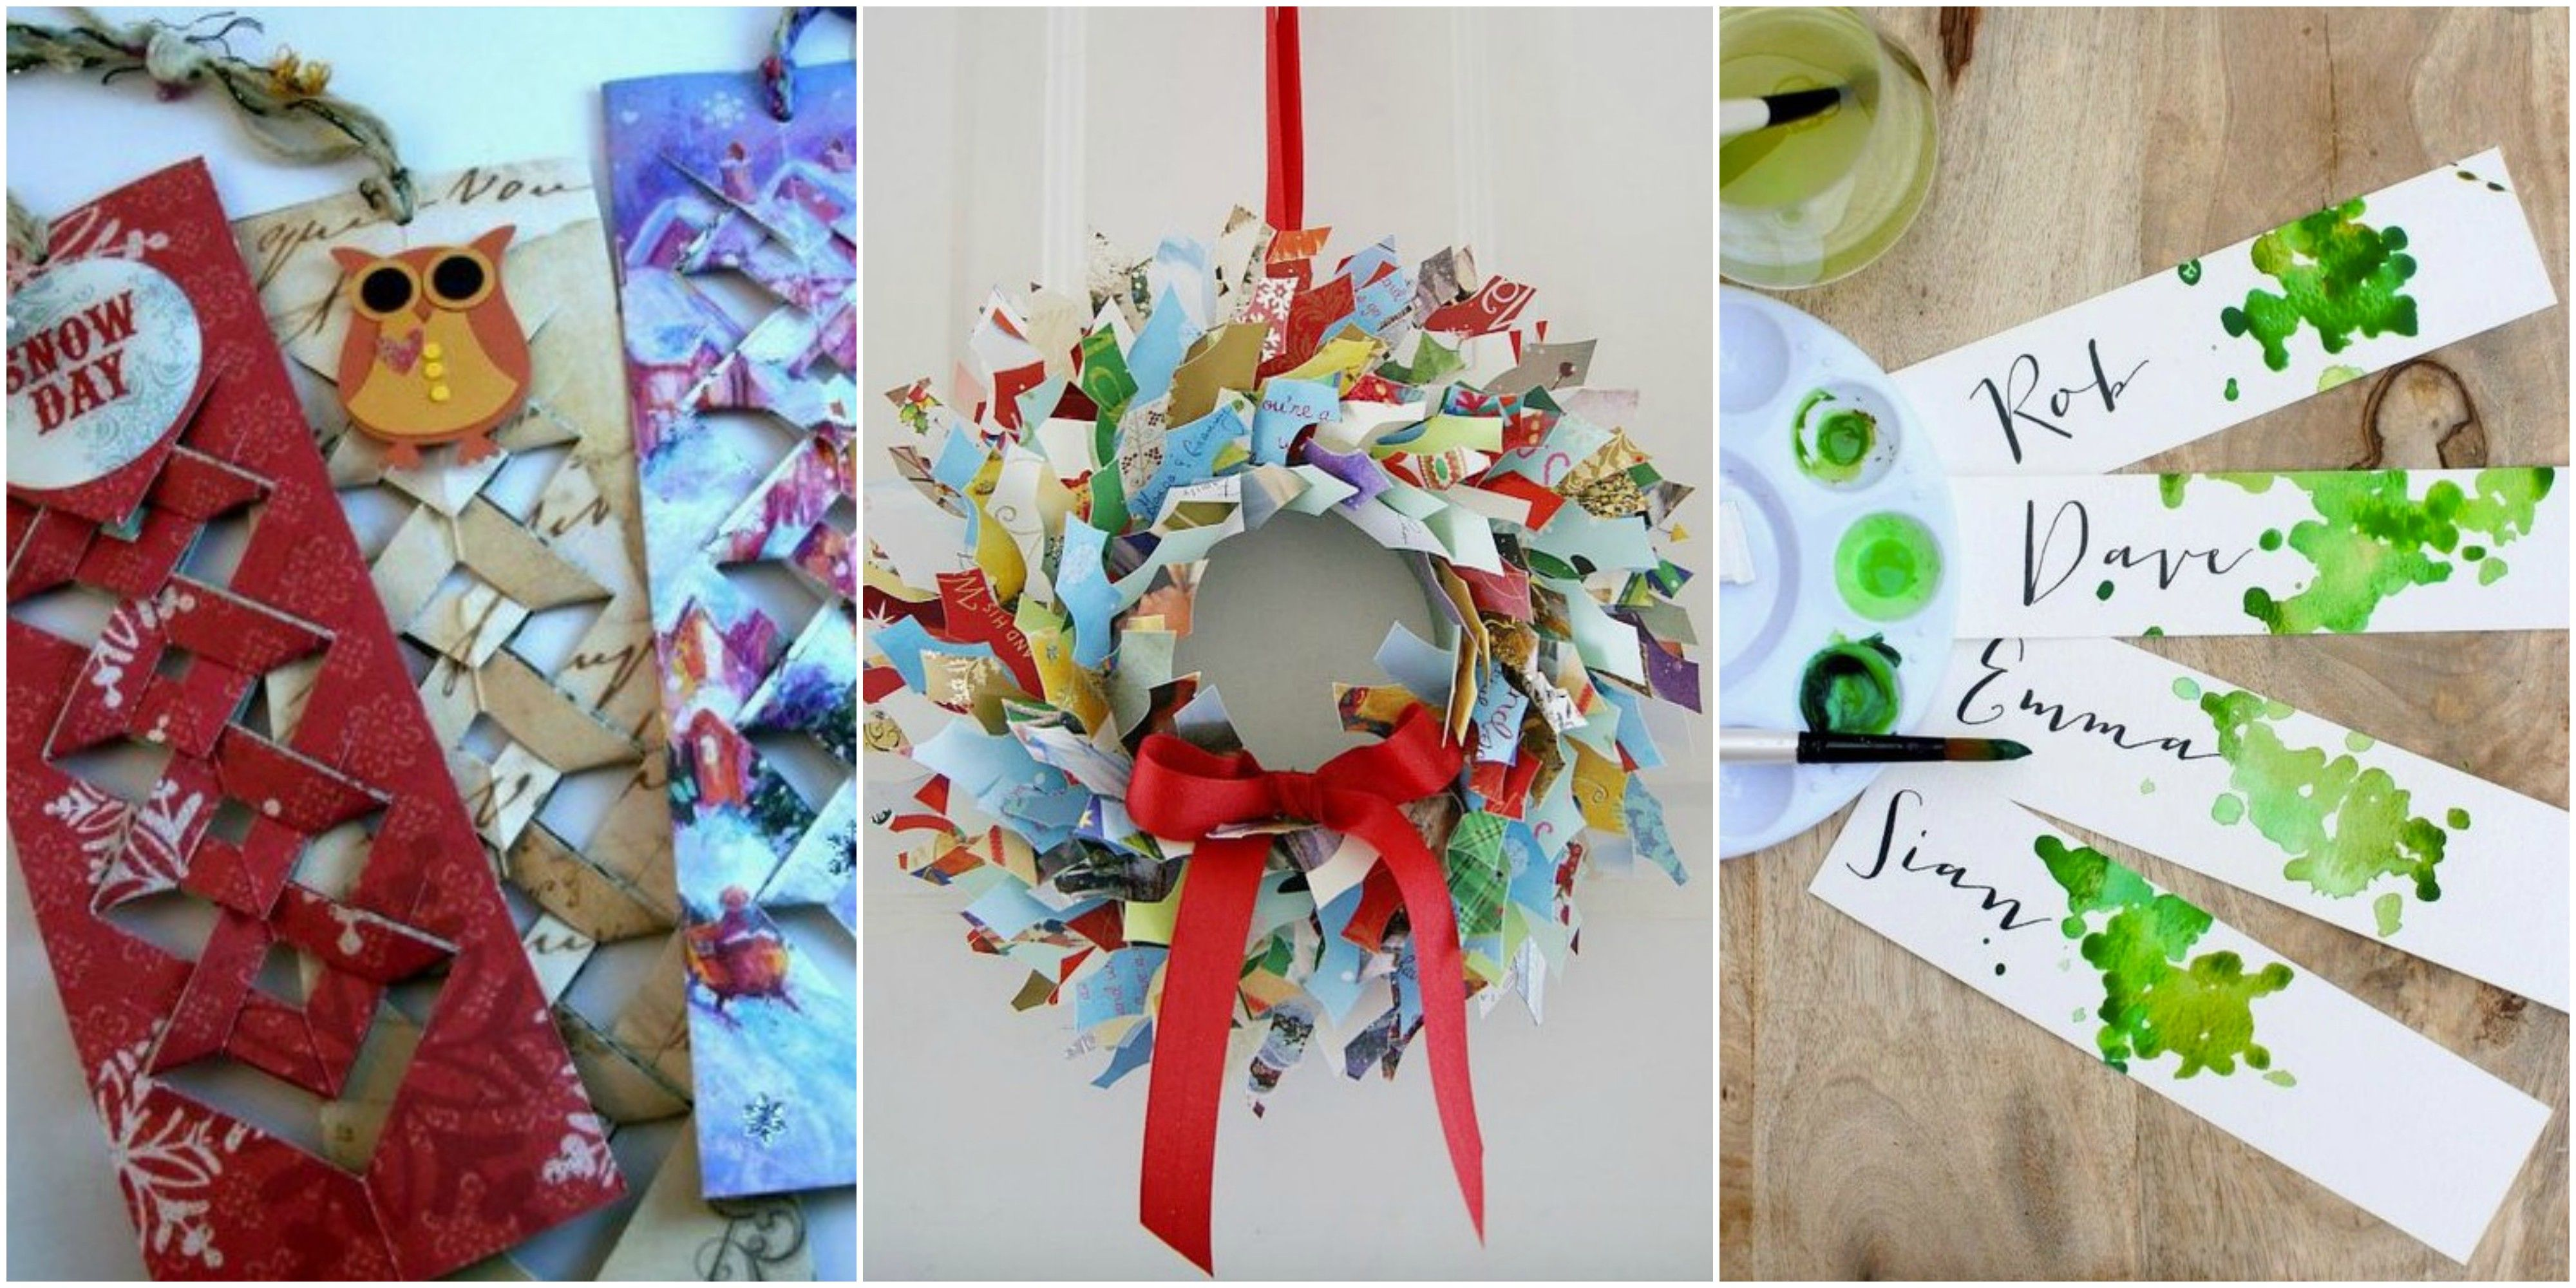 6 creative ideas for recycling Christmas cards